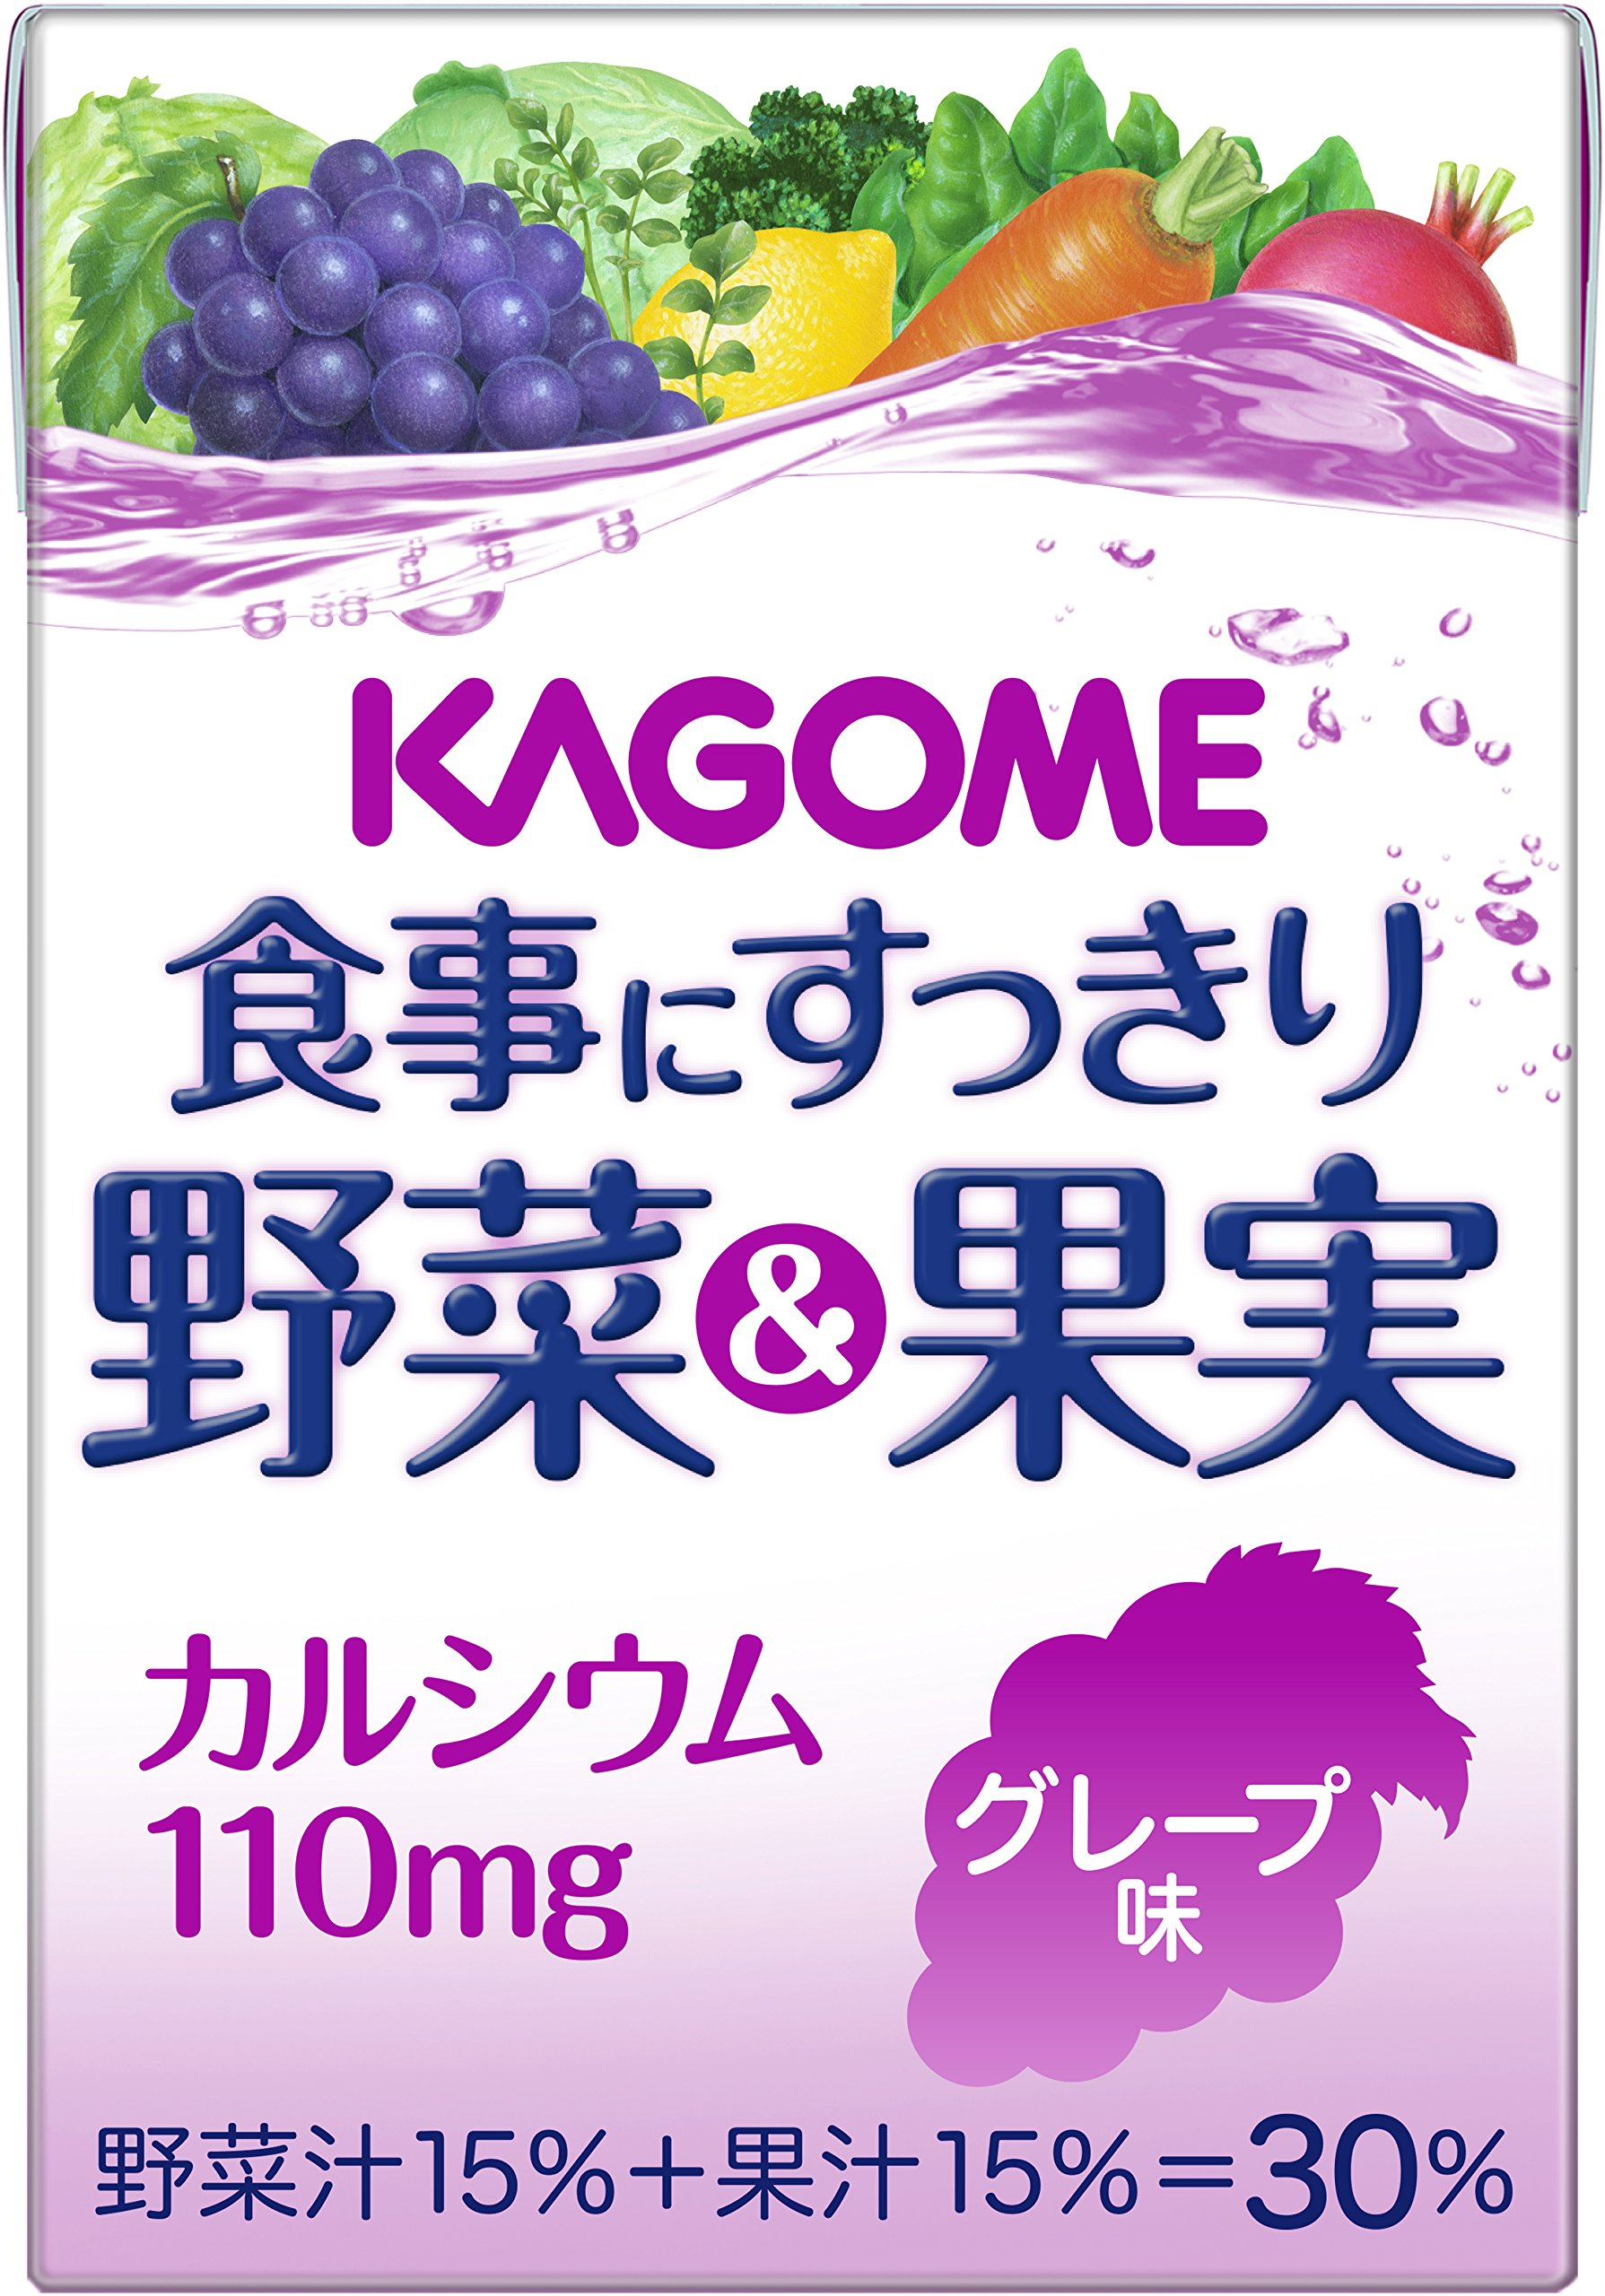 Kagome 100mlX36 this clean vegetables and fruit calcium grape flavor to the meal